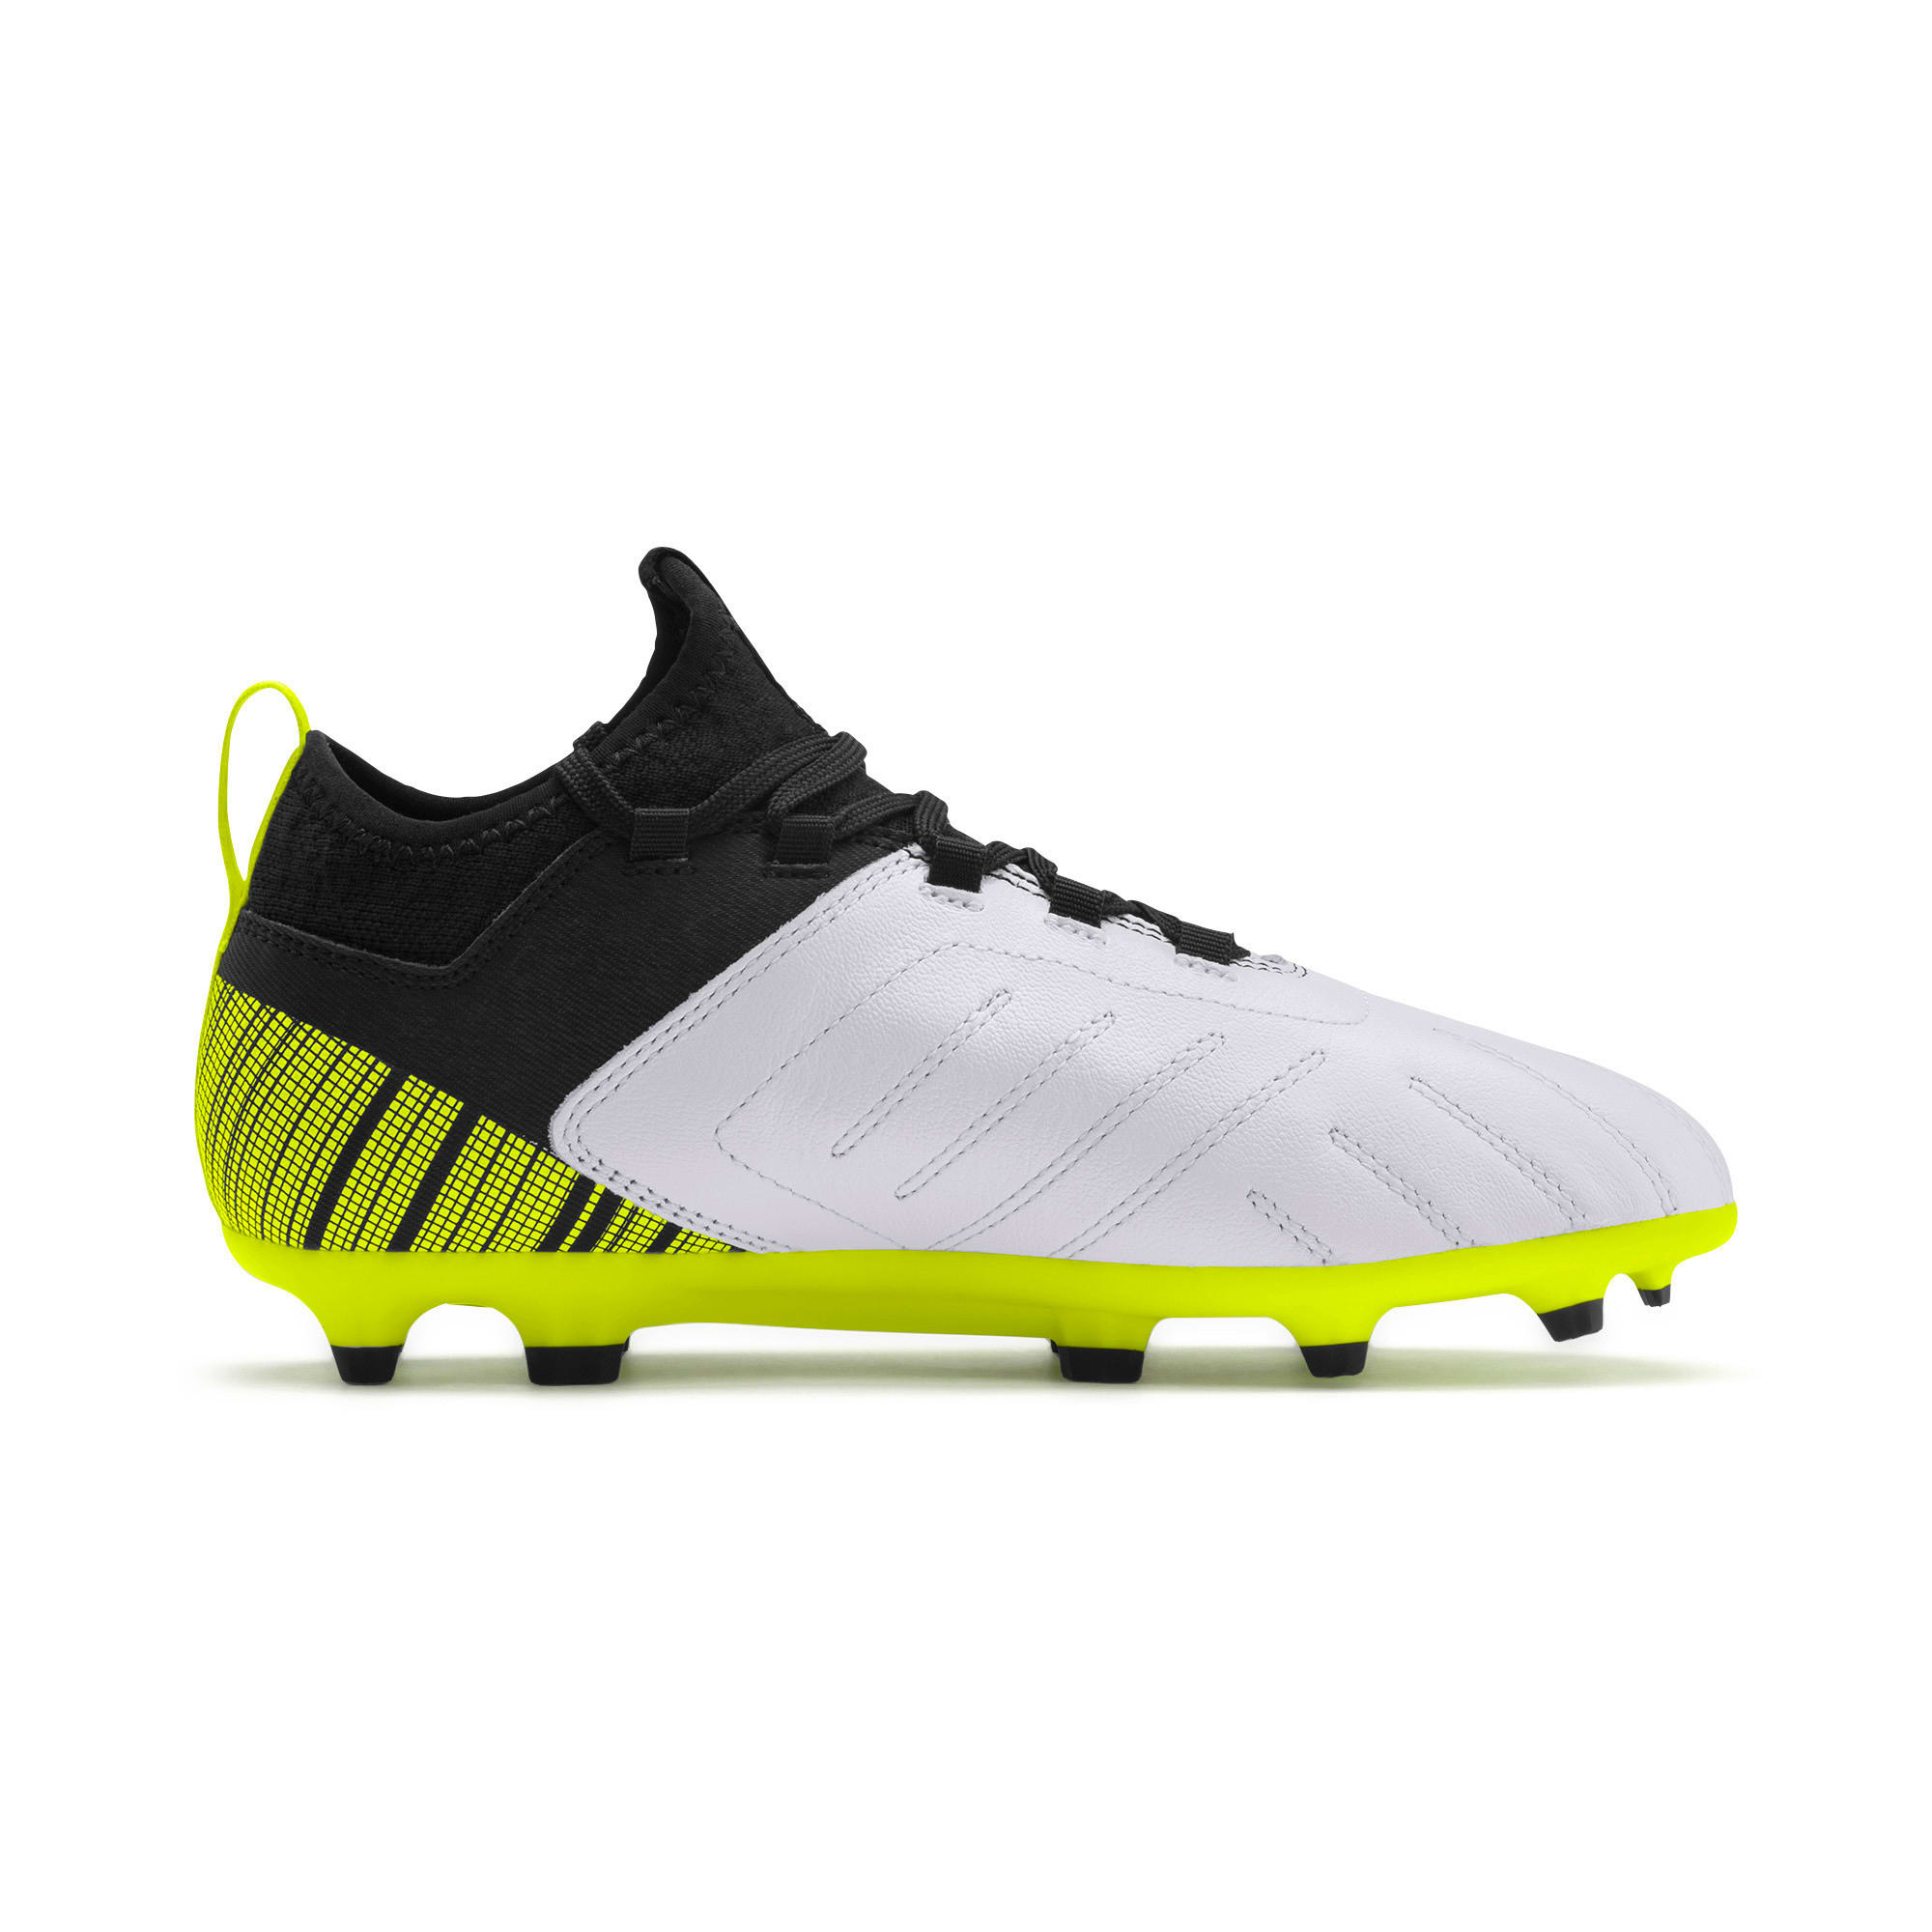 Thumbnail 5 of PUMA ONE 5.3 FG/AG Youth Fußballschuhe, White-Black-Yellow Alert, medium